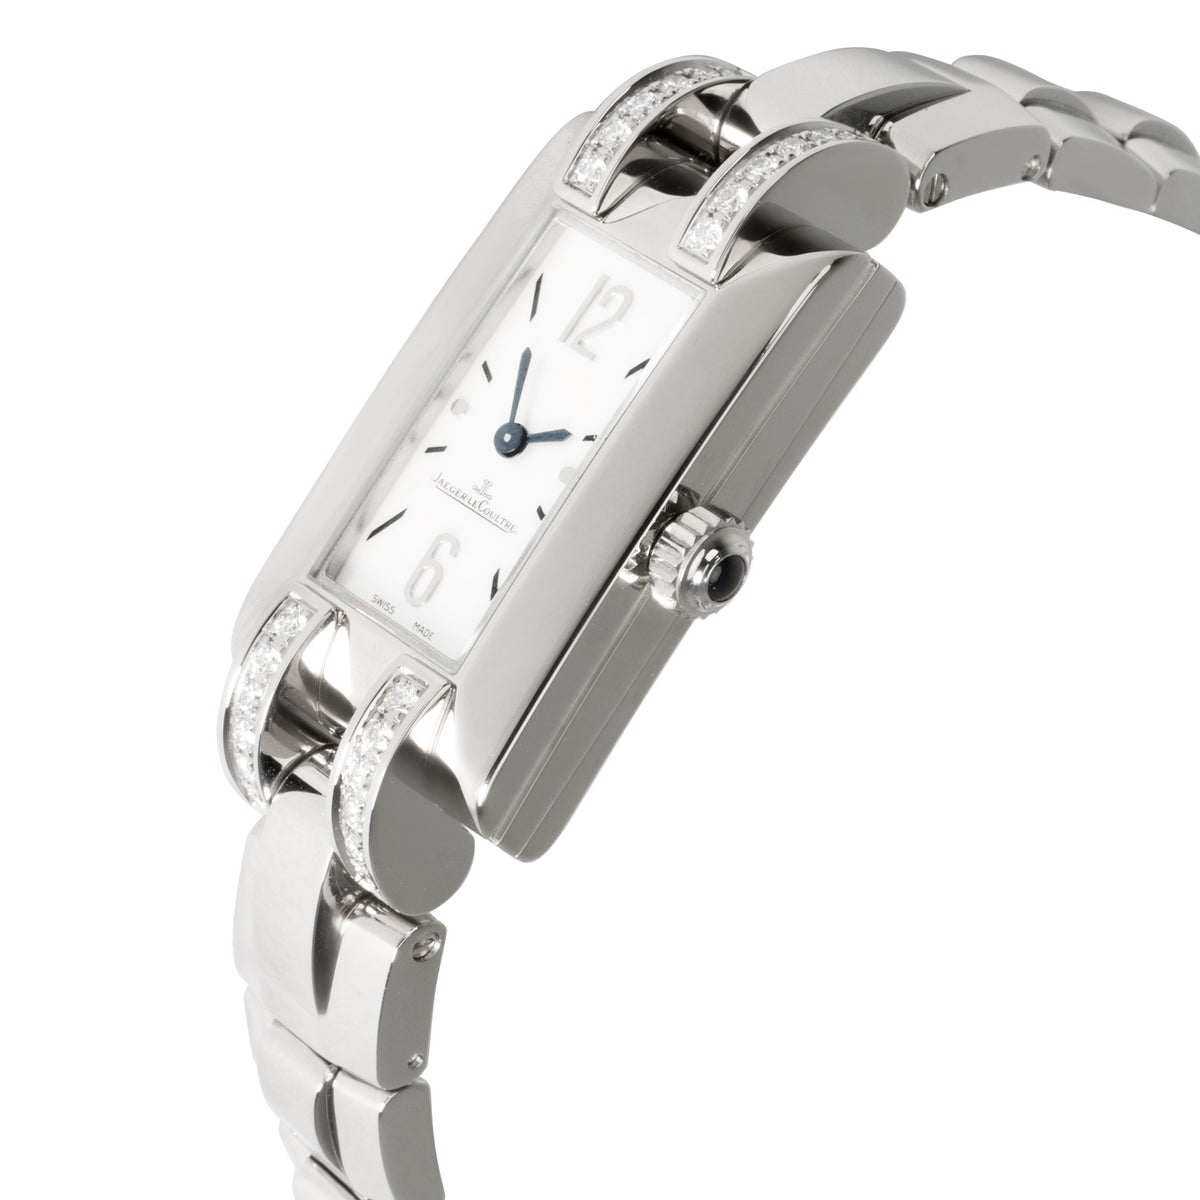 Jaeger-LeCoultre Ideale Q4608121 Women's Watch in  Stainless Steel